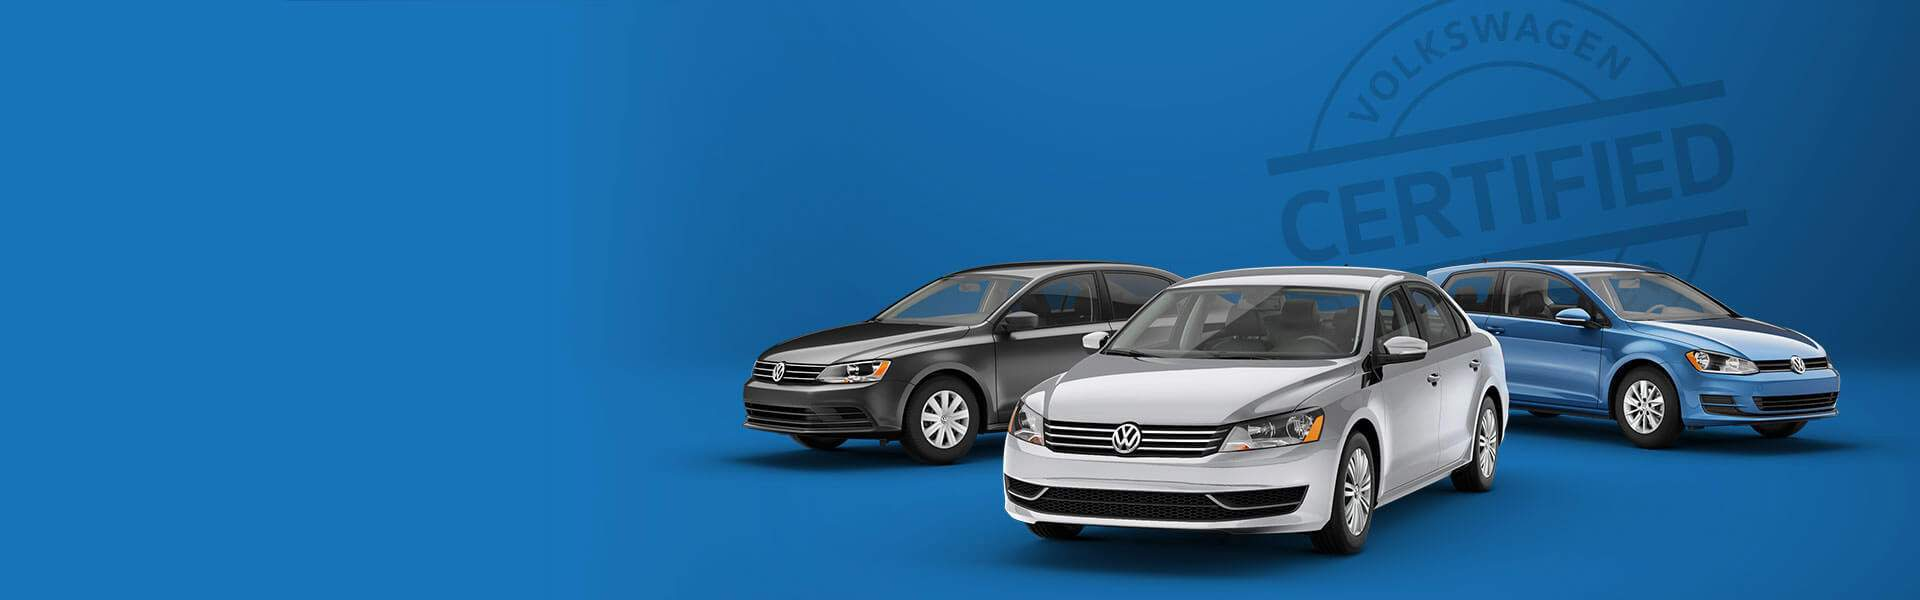 Volkswagen Certified Pre-Owned in Encinitas, CA